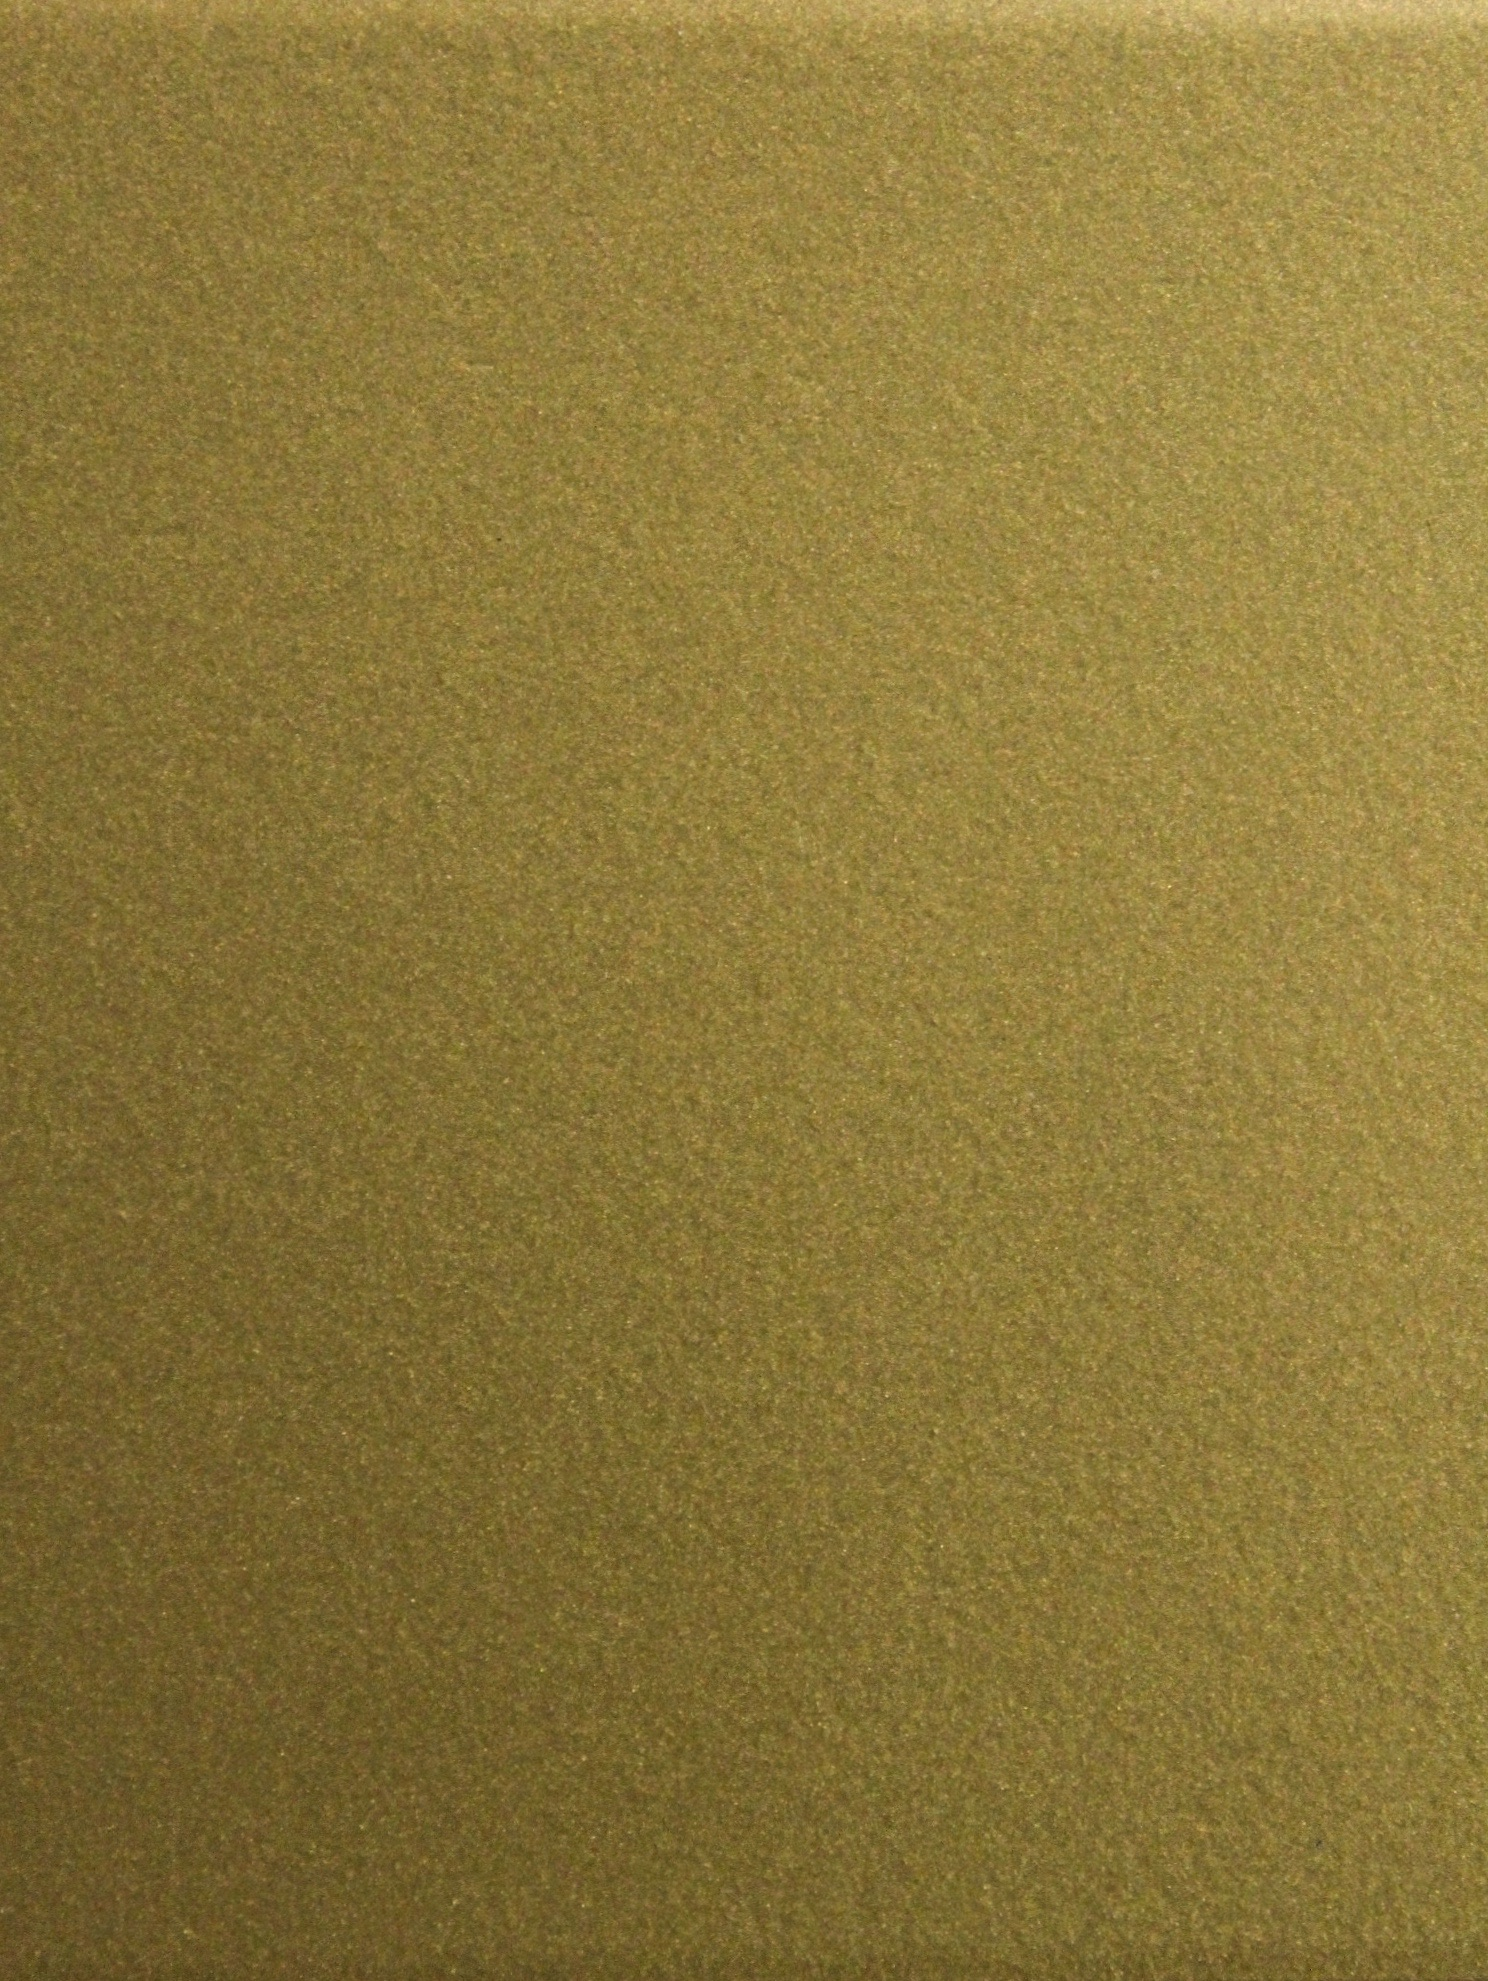 burnished_gold_lacquer